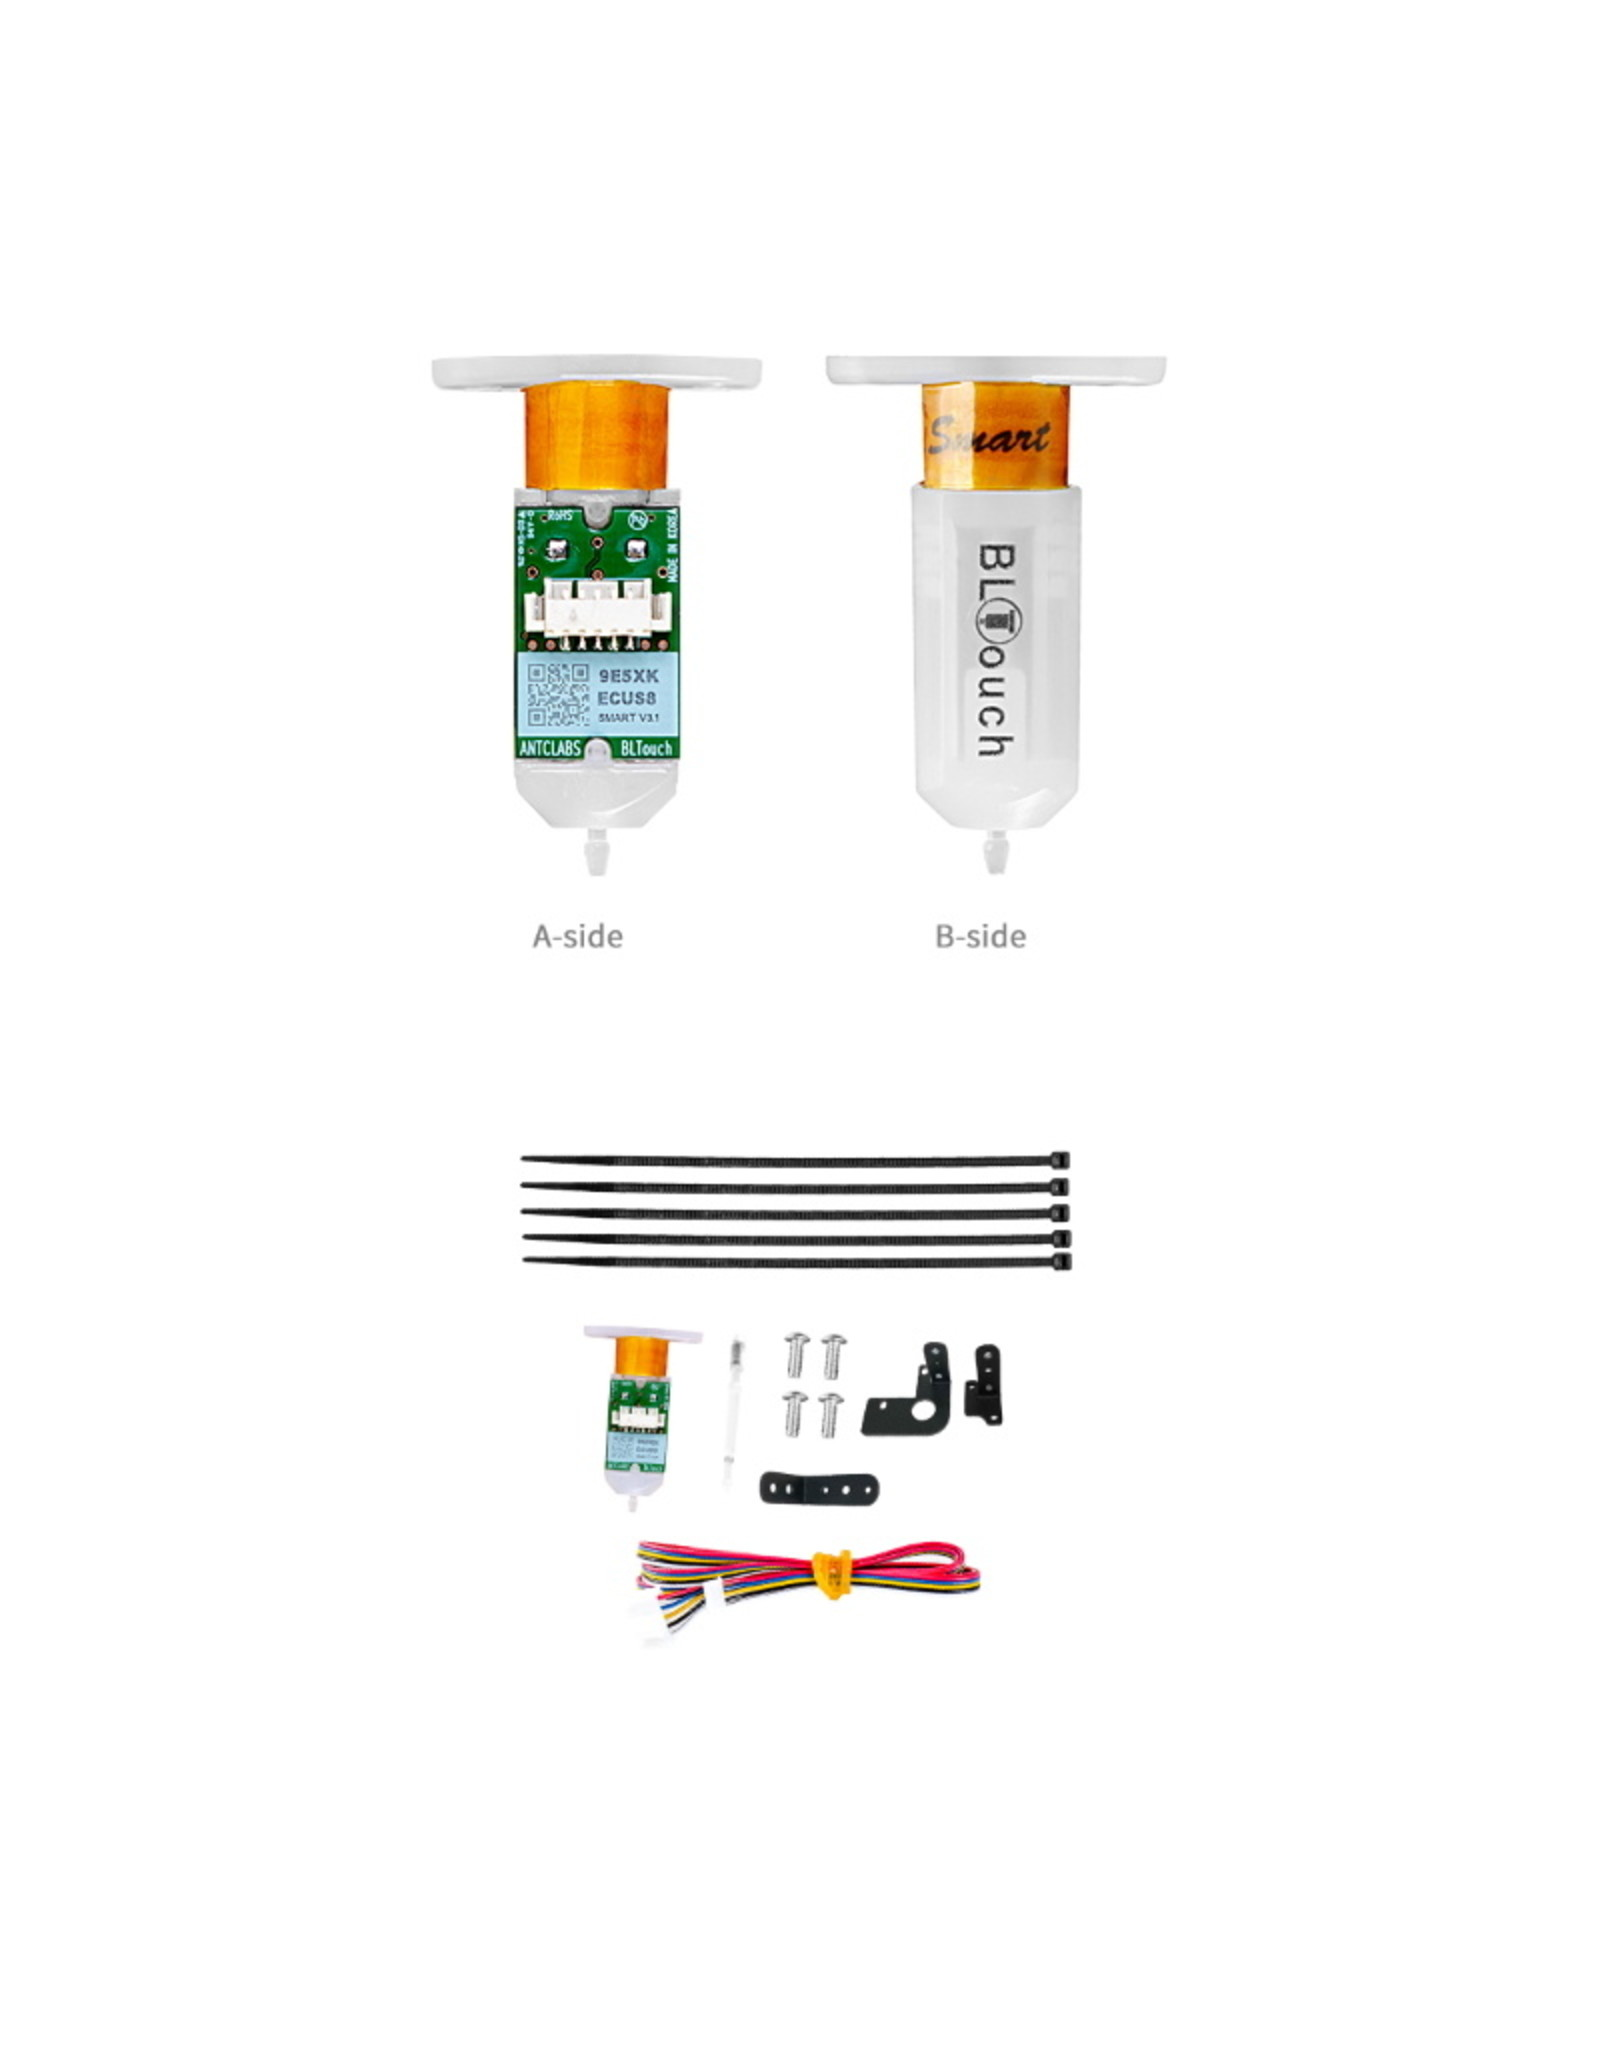 Creality/Ender NEW! Creality BL Touch kit for autoleveling (32-bit mainboard - Ender V2)